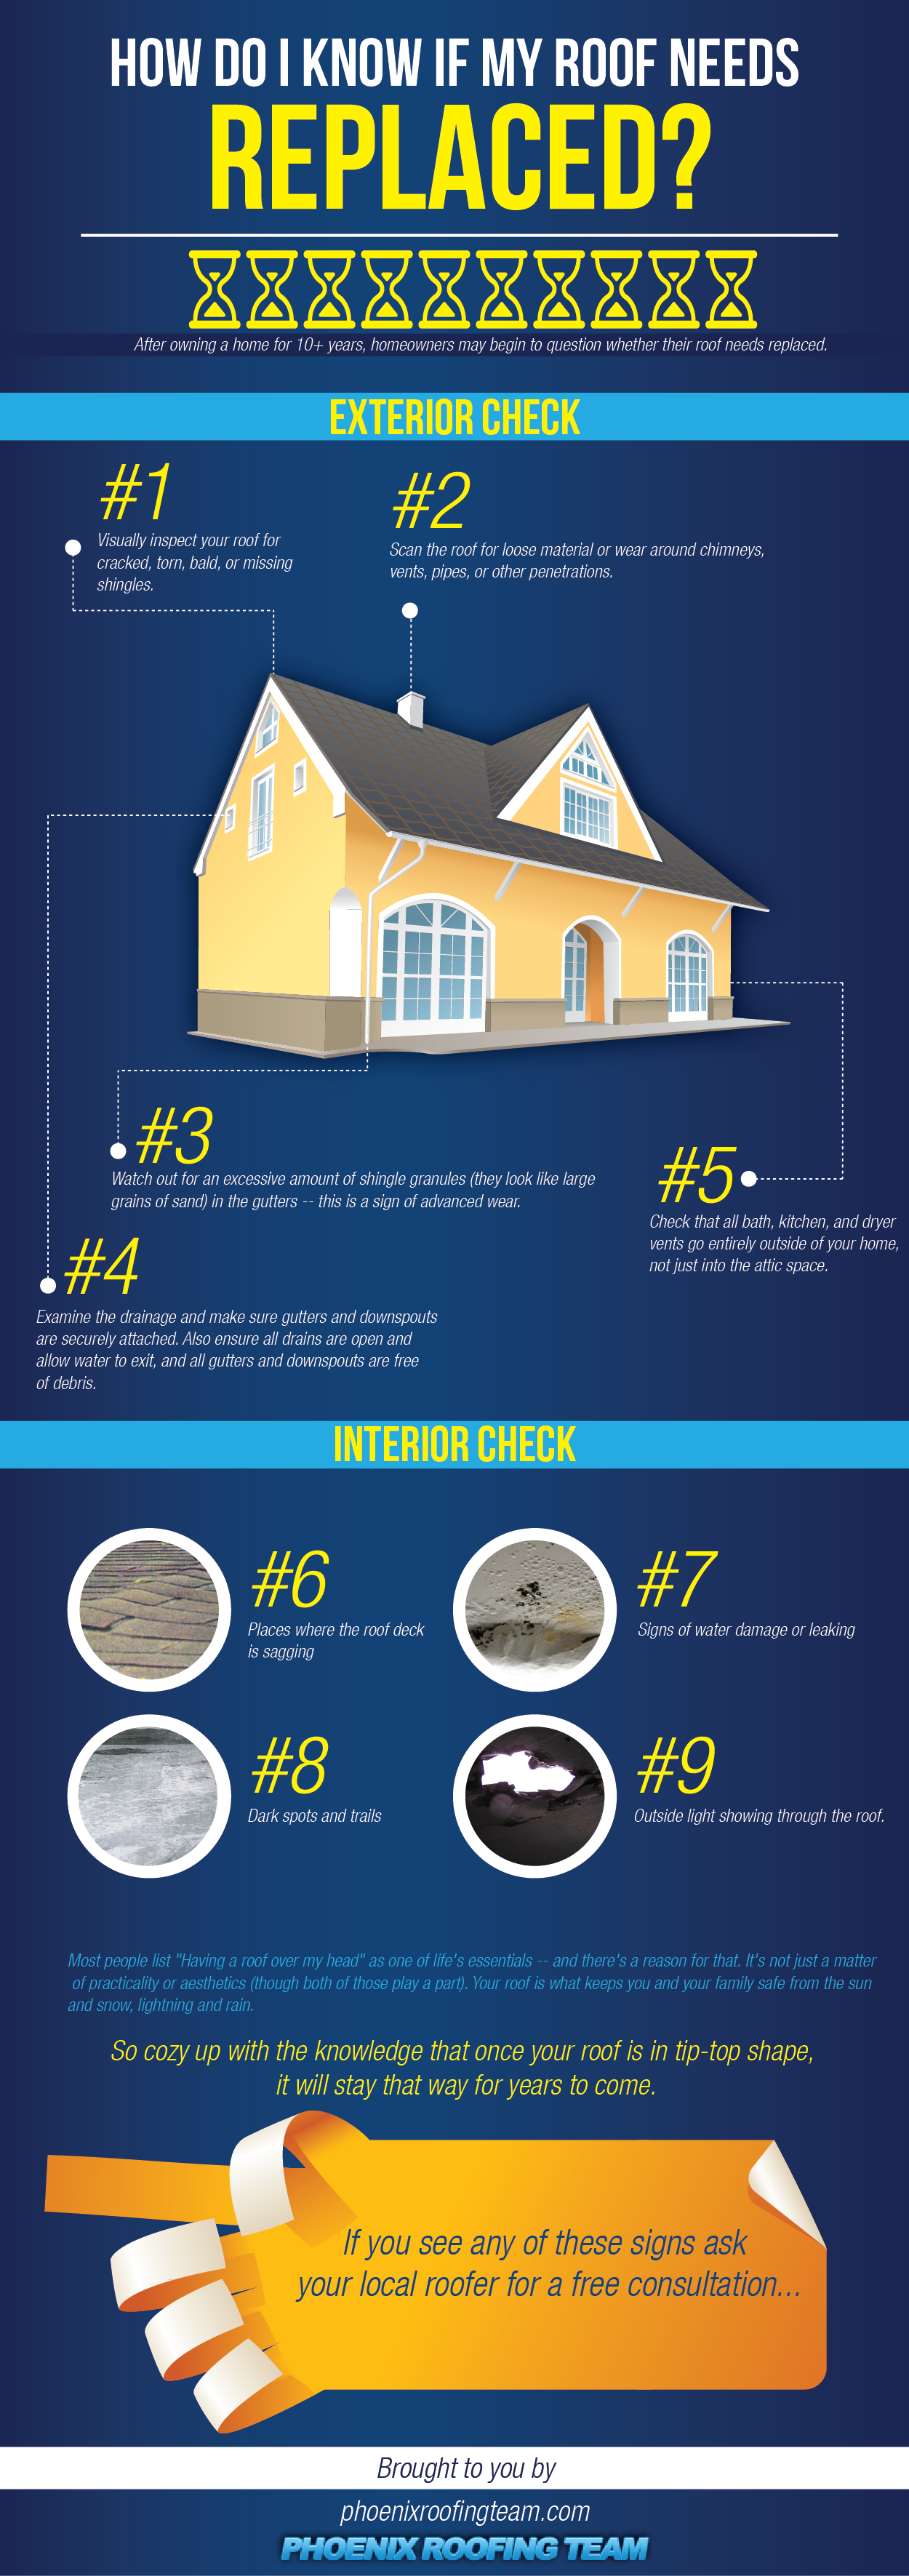 Roofing Infographic How To Know If Your Roof Needs Replaced Roofing Roof Problems Roof Repair